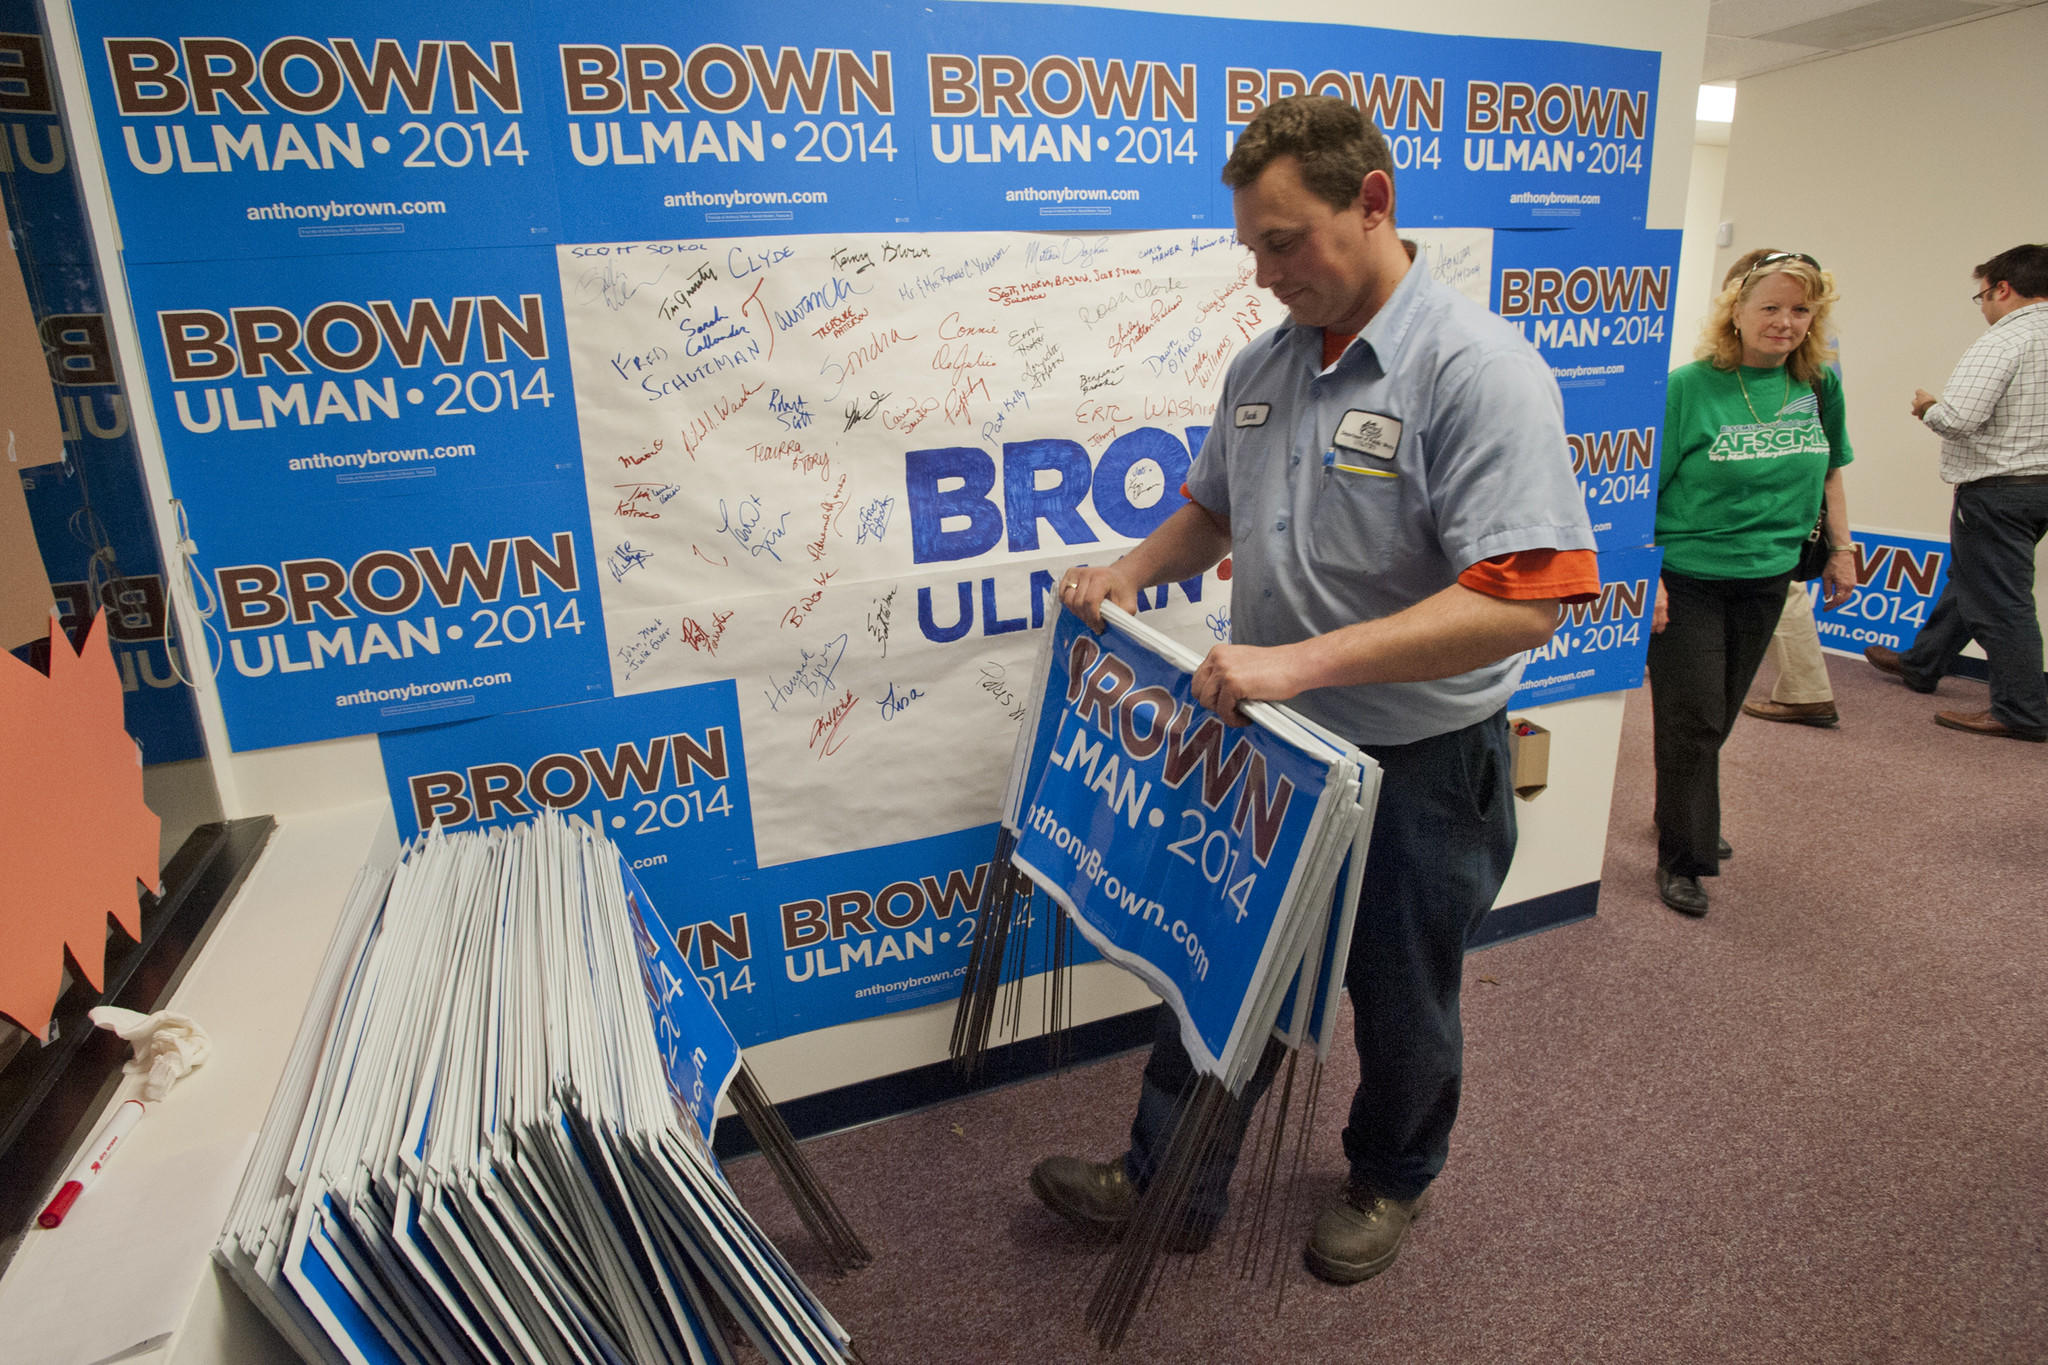 Rob Buck, an AFSCME volunteer, stacks completed lawn signs by the door of the Baltimore County Field Office for Anthony Brown-Ken Ulman at 1840 York Road. Volunteers were putting together lawn signs and working the phone bank.